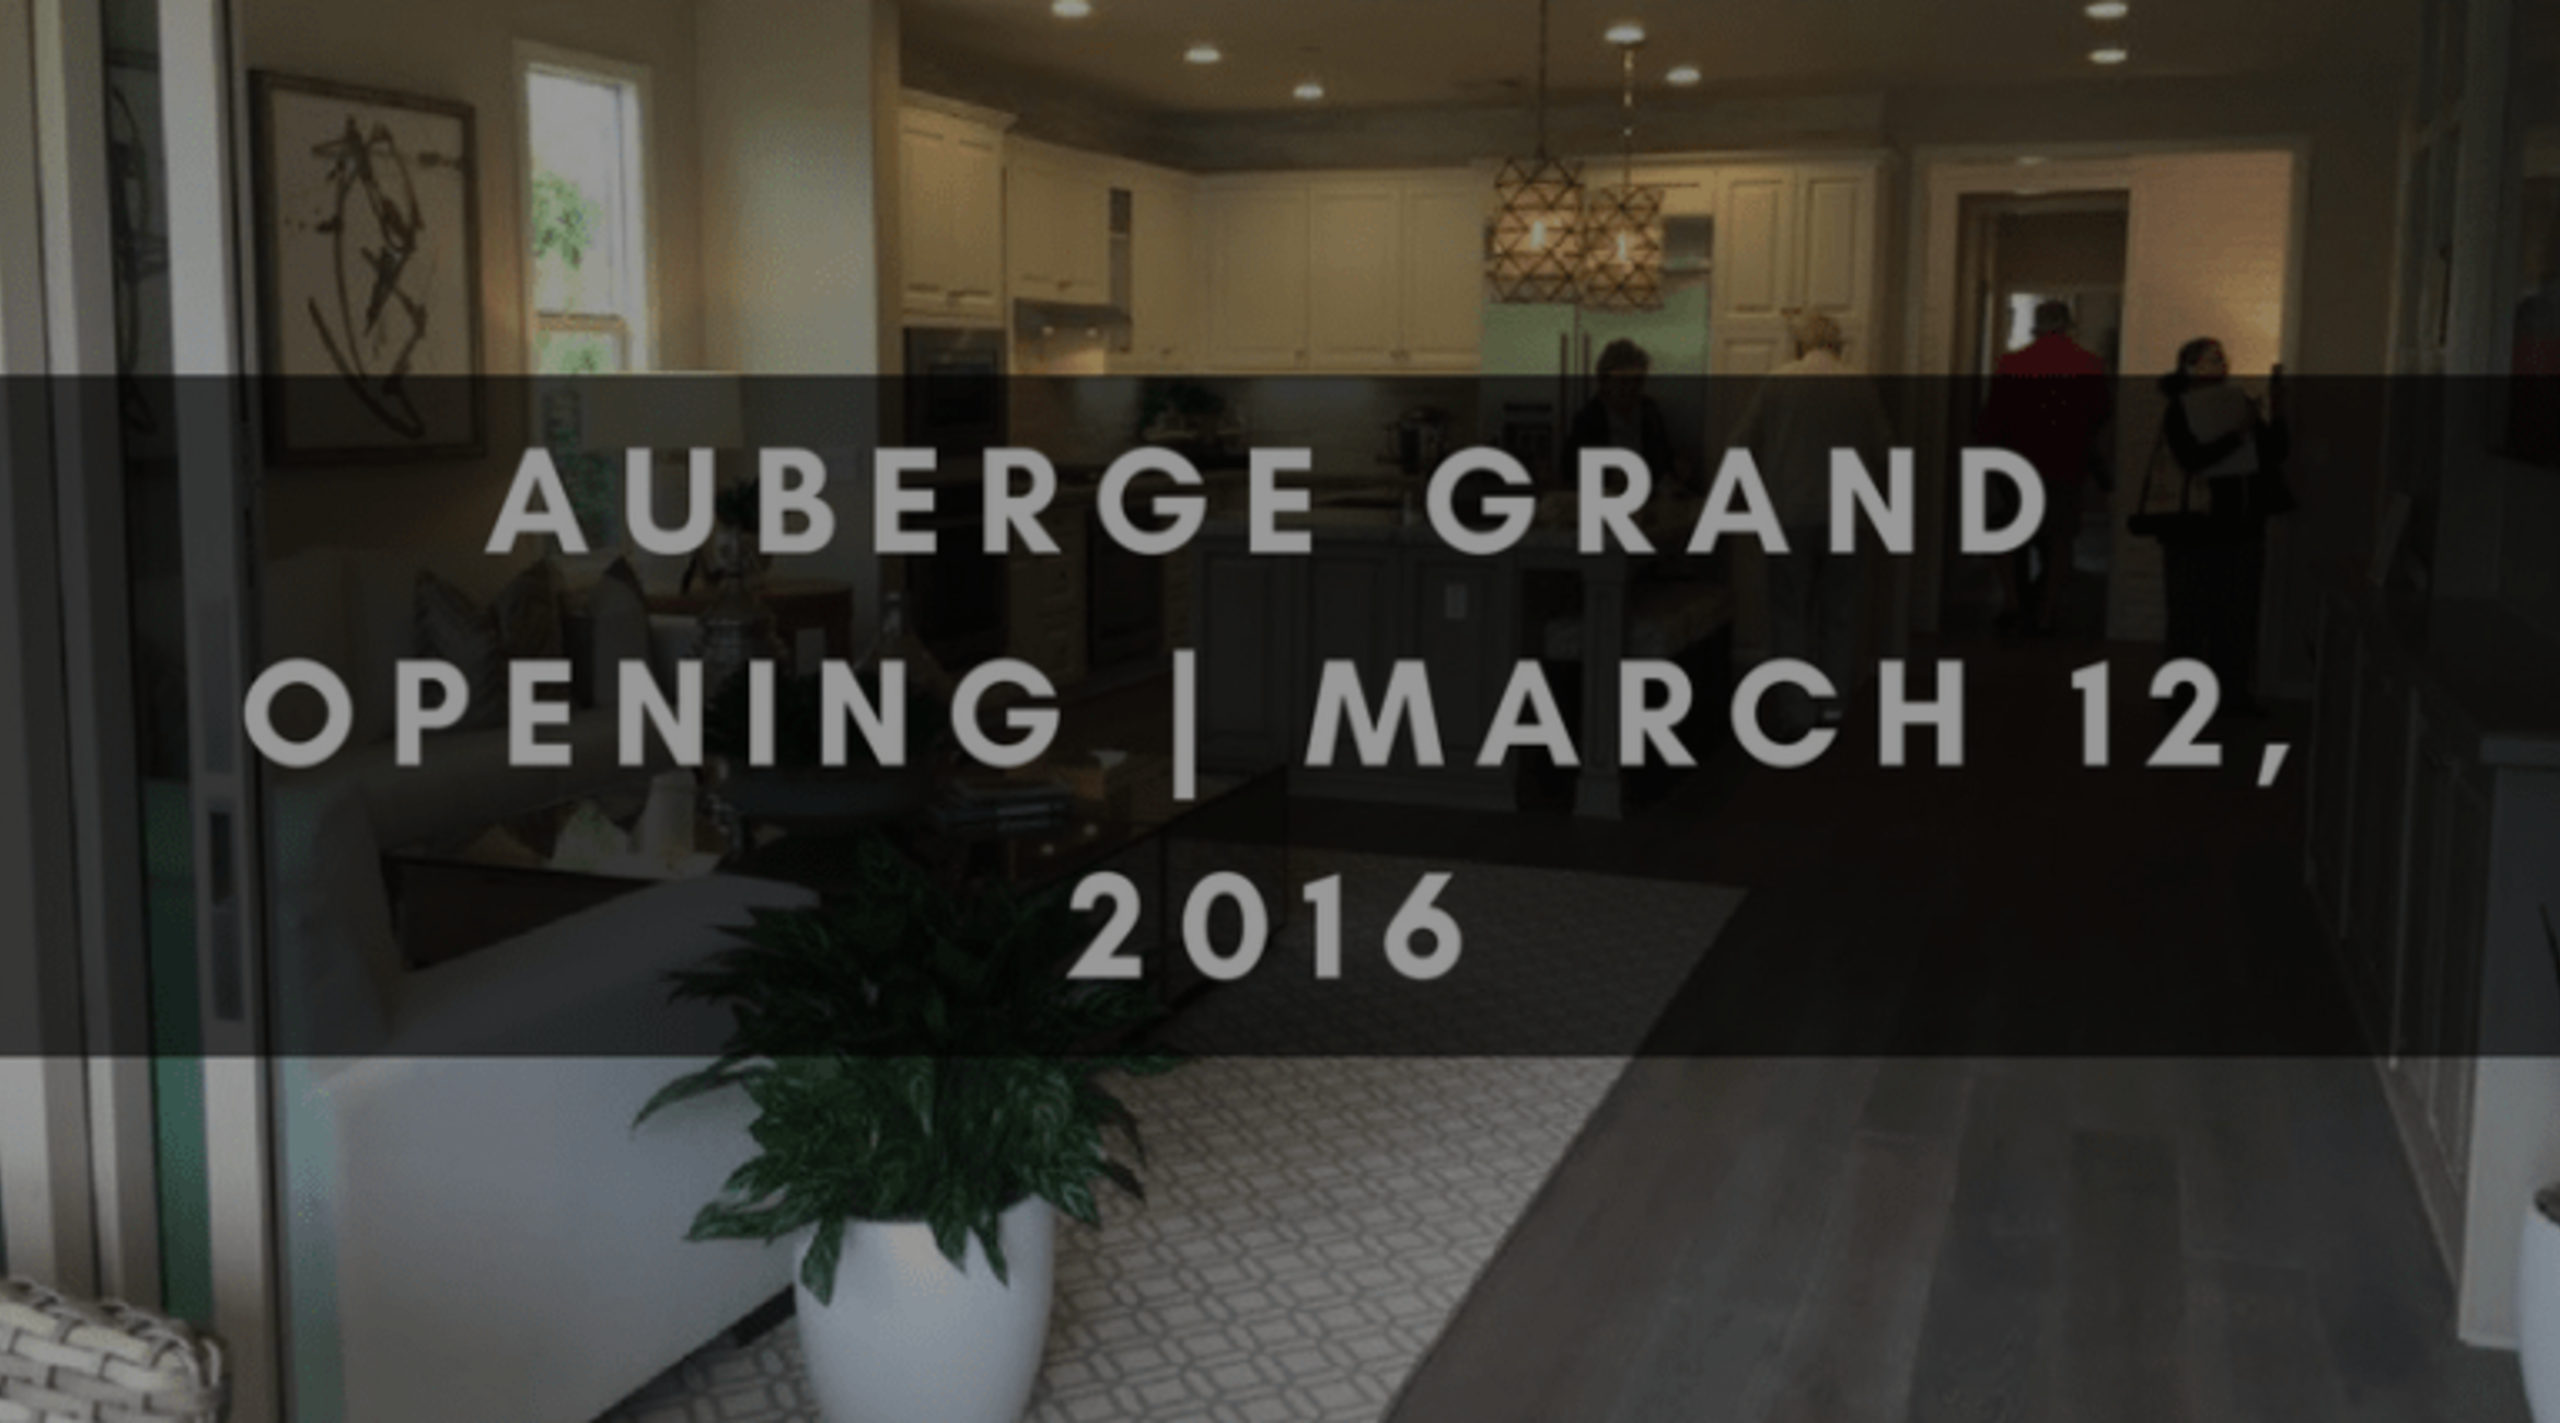 AUBERGE GRAND OPENING | MARCH 12, 2016